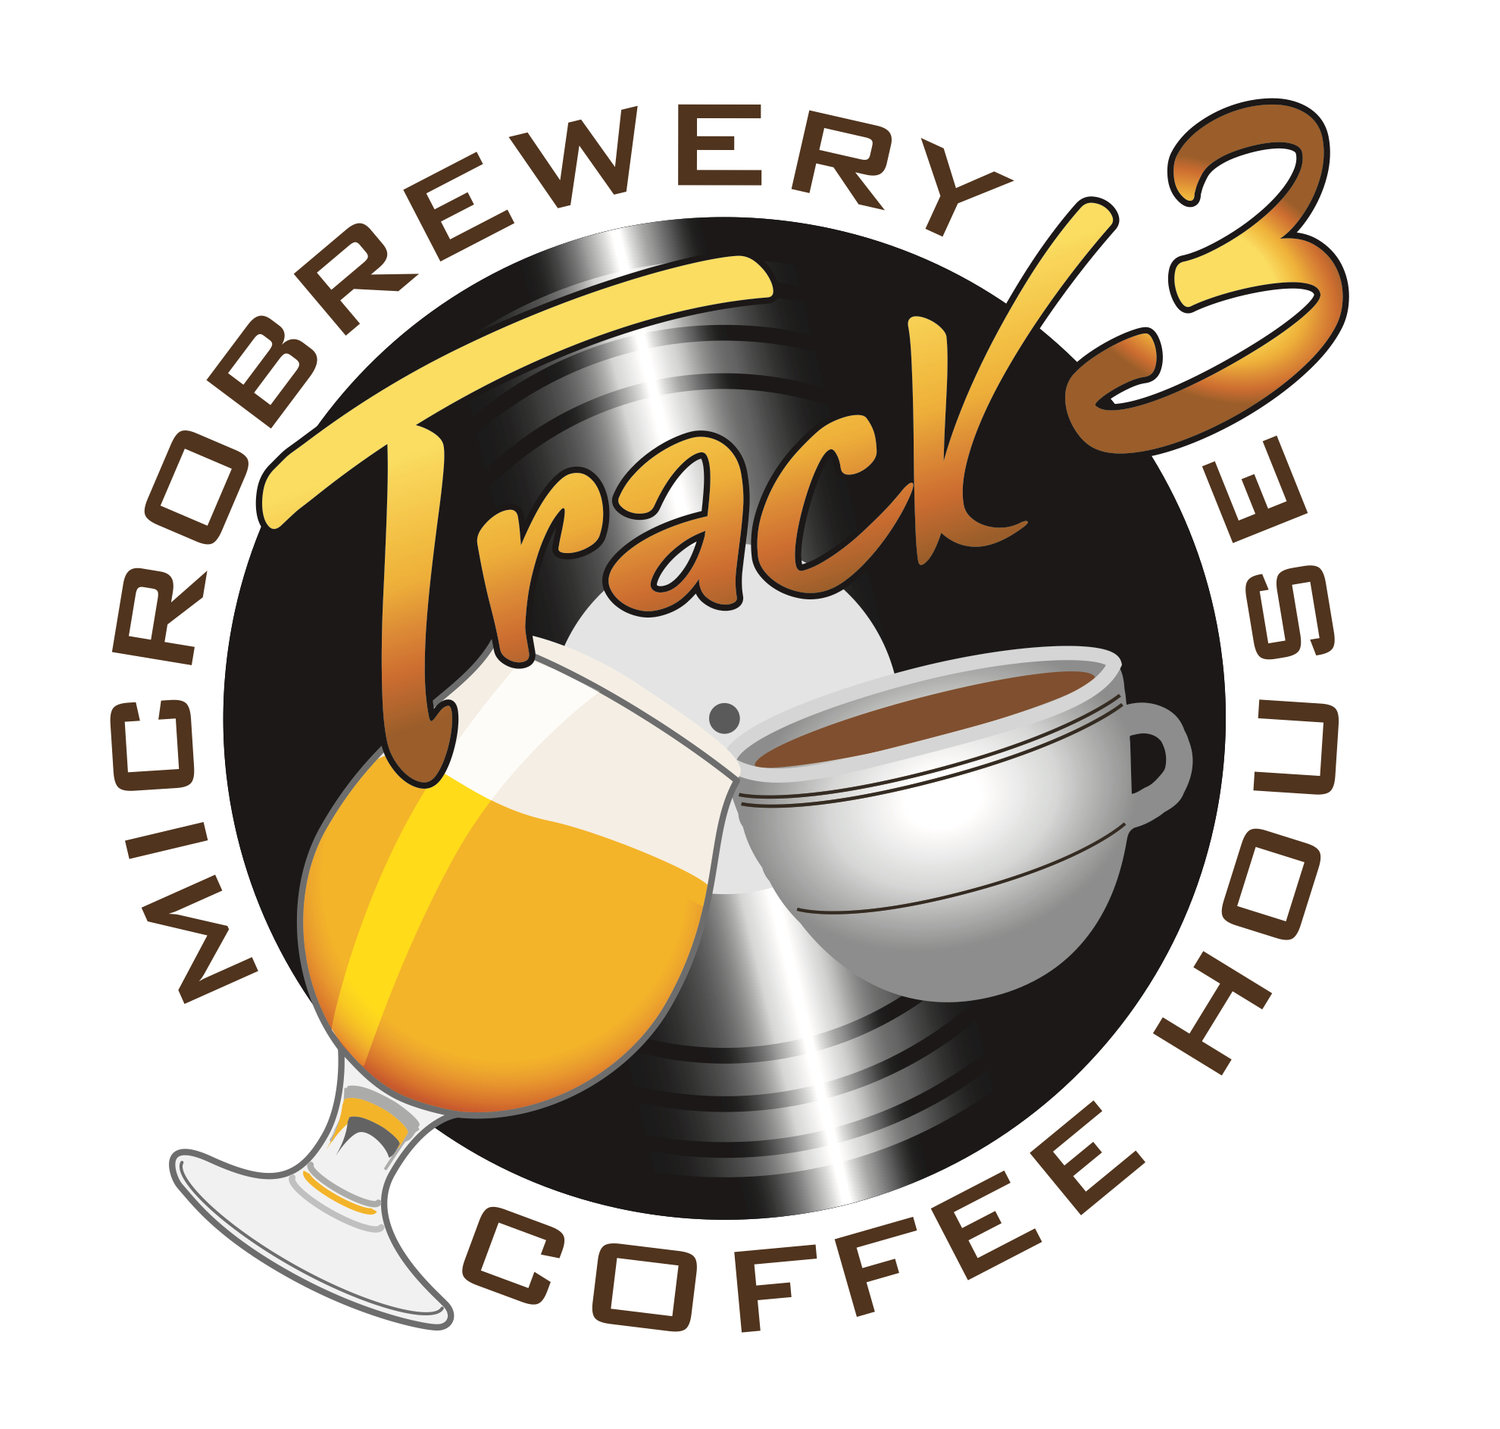 Track 3 Microbrewery & Coffee House